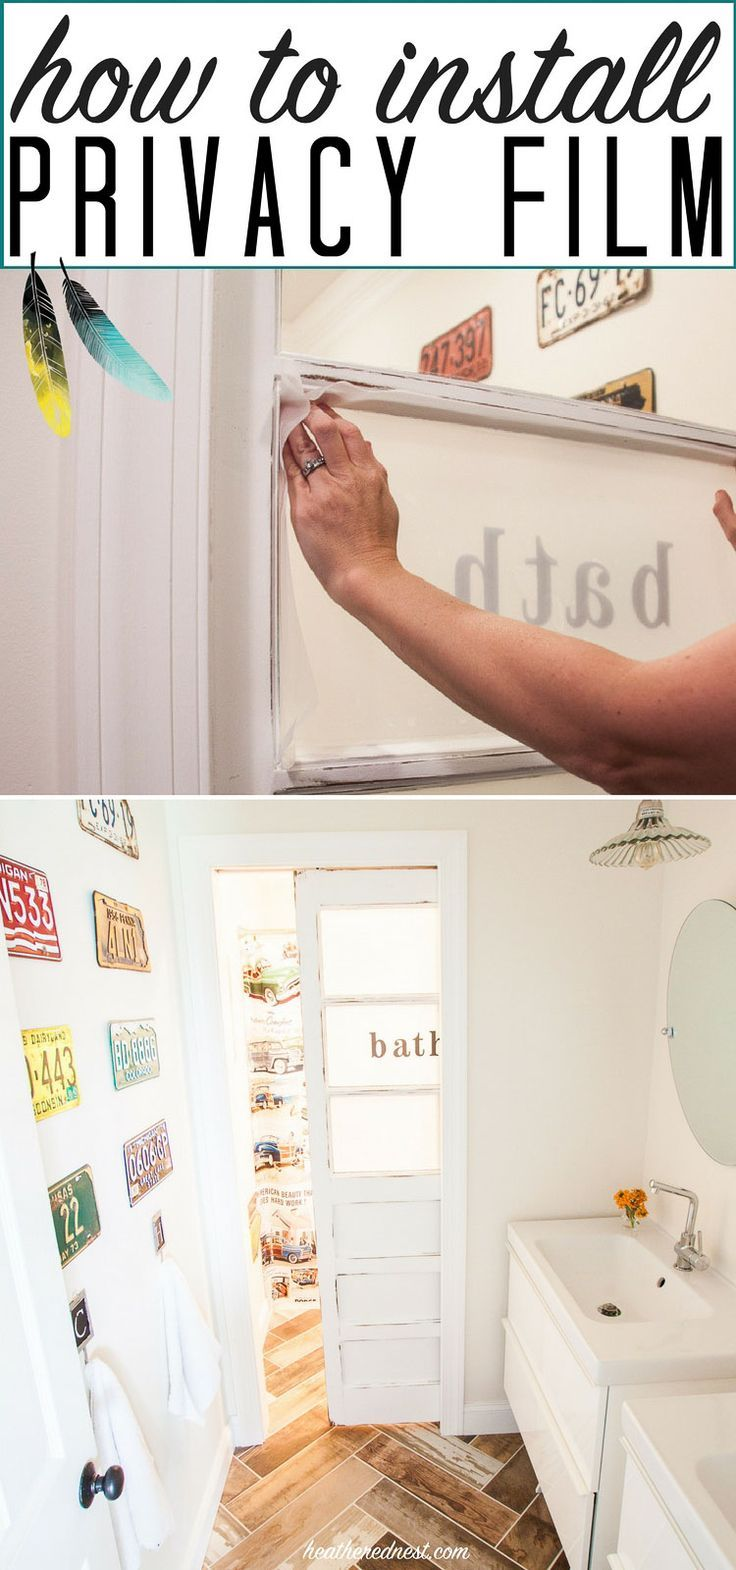 how to install privacy film an easy DIY tutorial from http://heatherednest.com. Cost effective, popular way to get privacy glass for your bathroom doors and windows! Great idea!!!